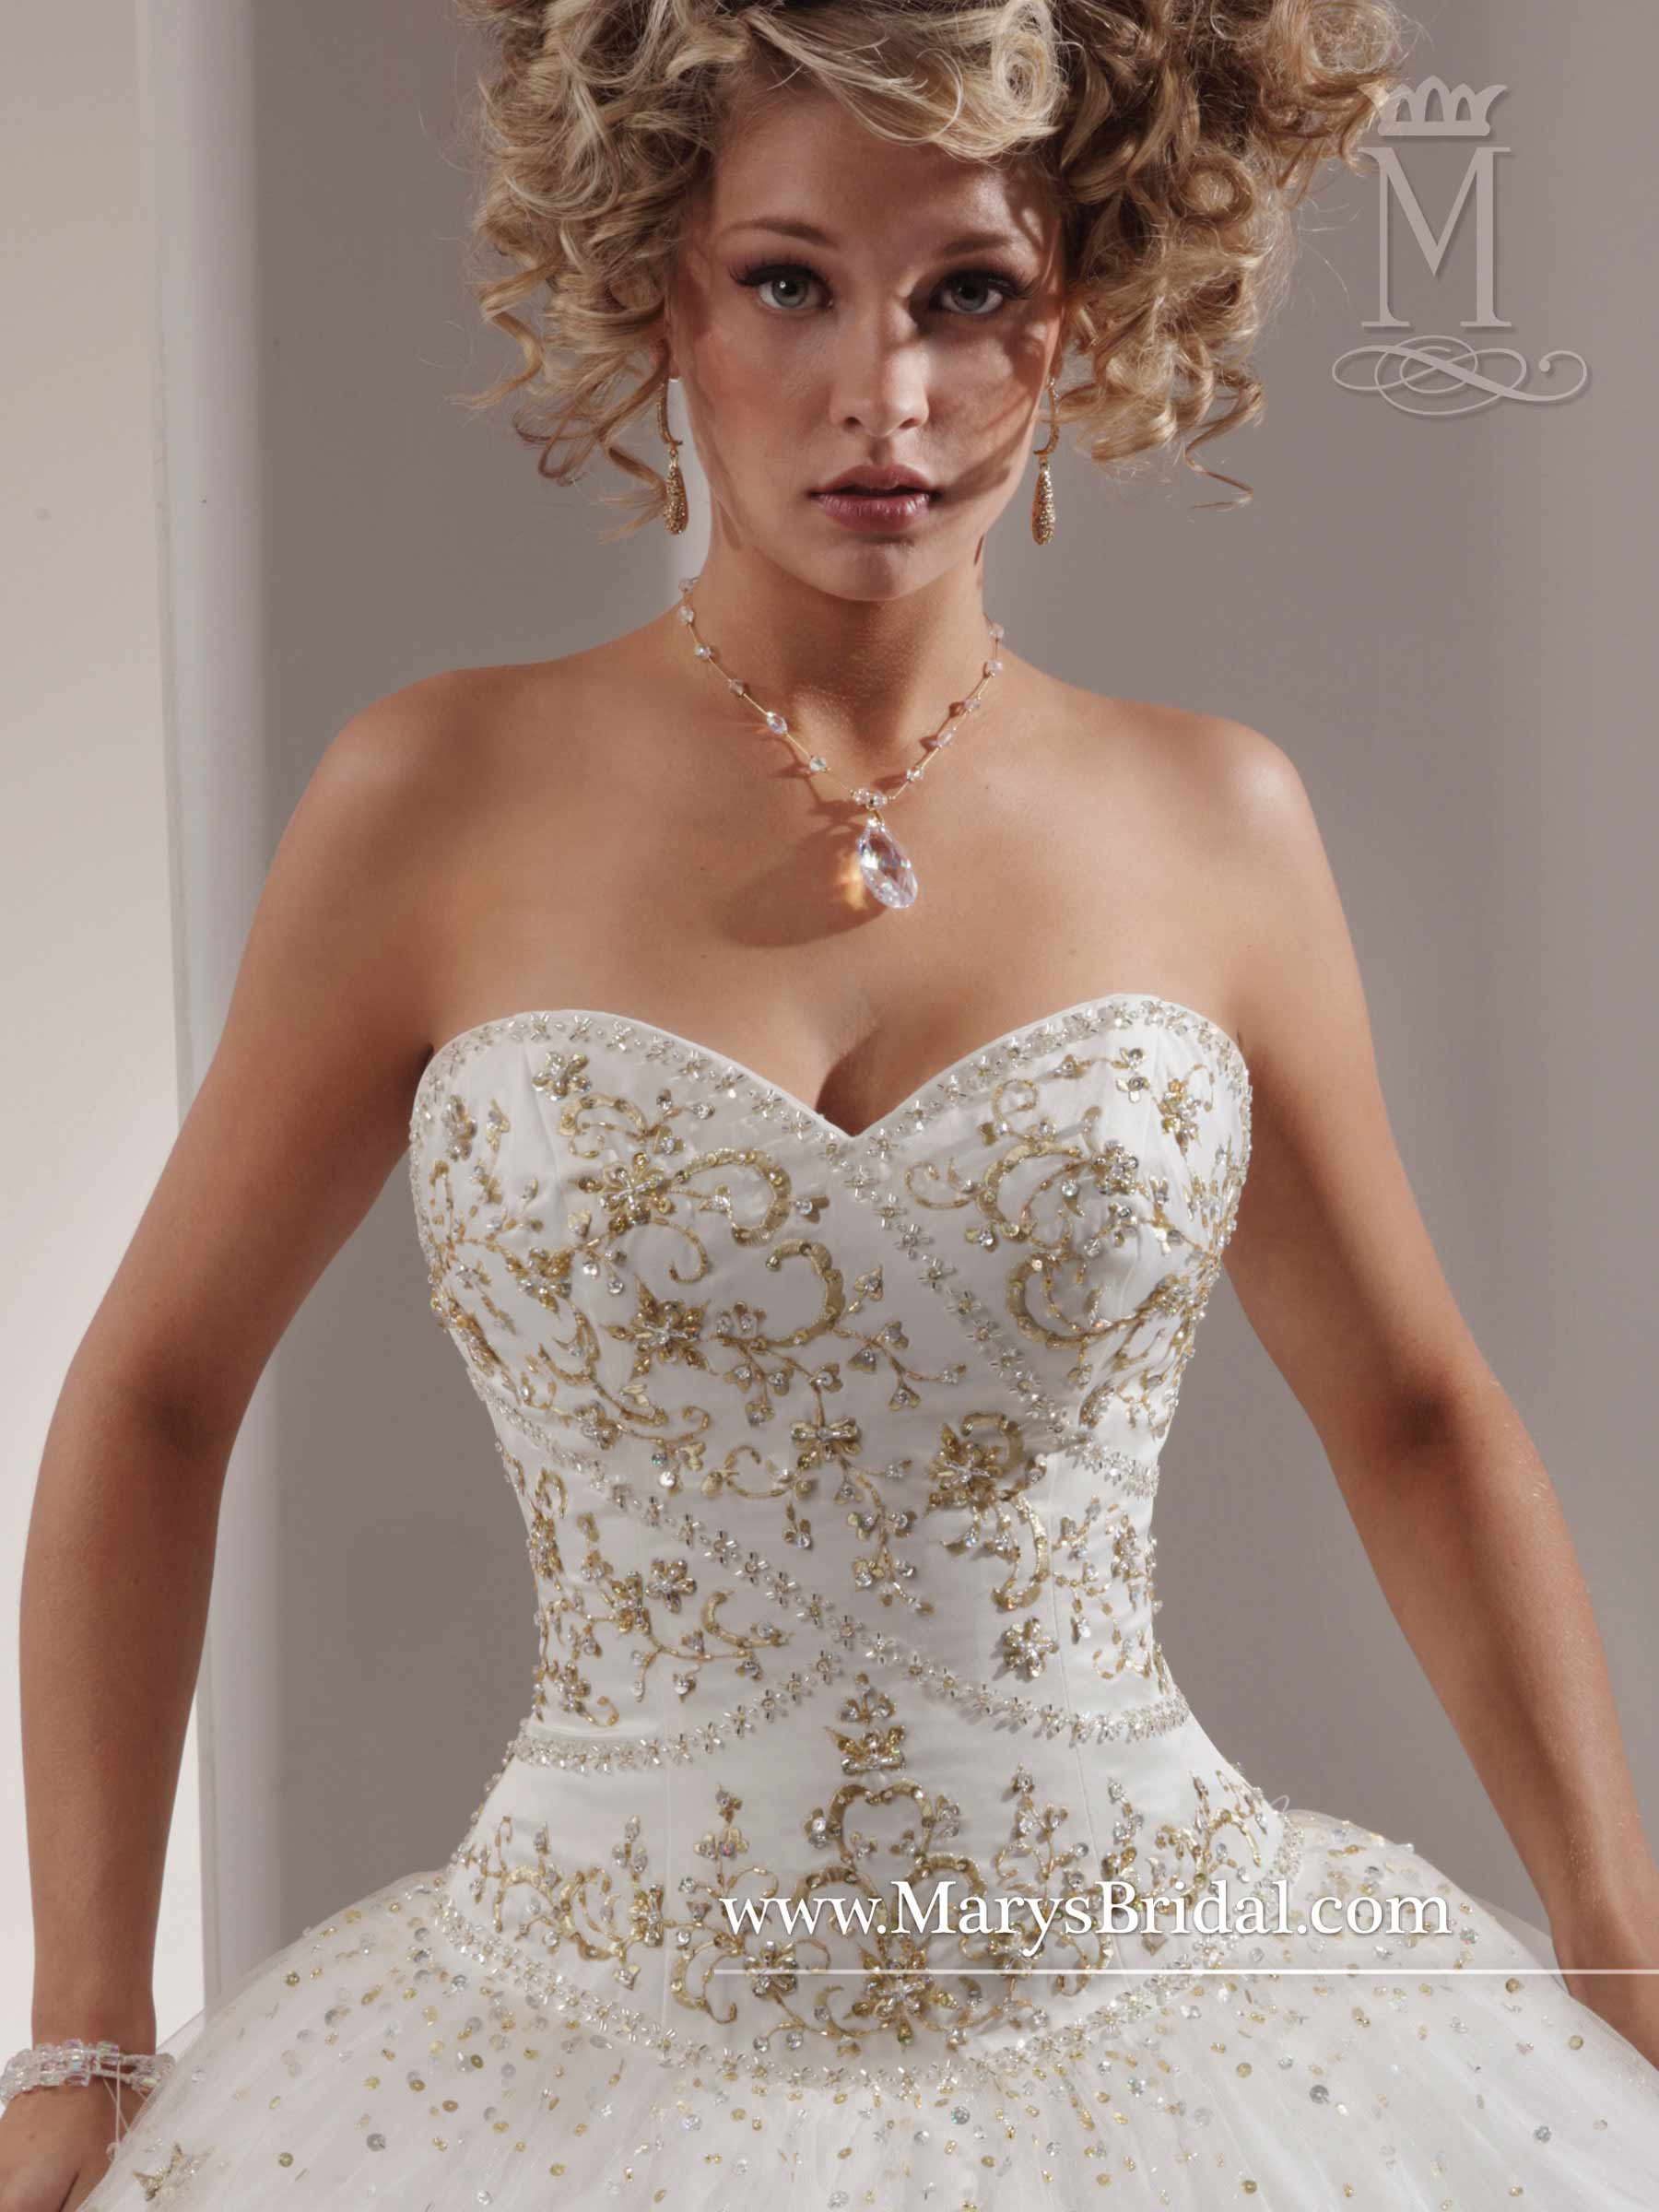 Marys Quinceanera Dresses | Style - 4015 in Black/Gold, Red/Gold ...